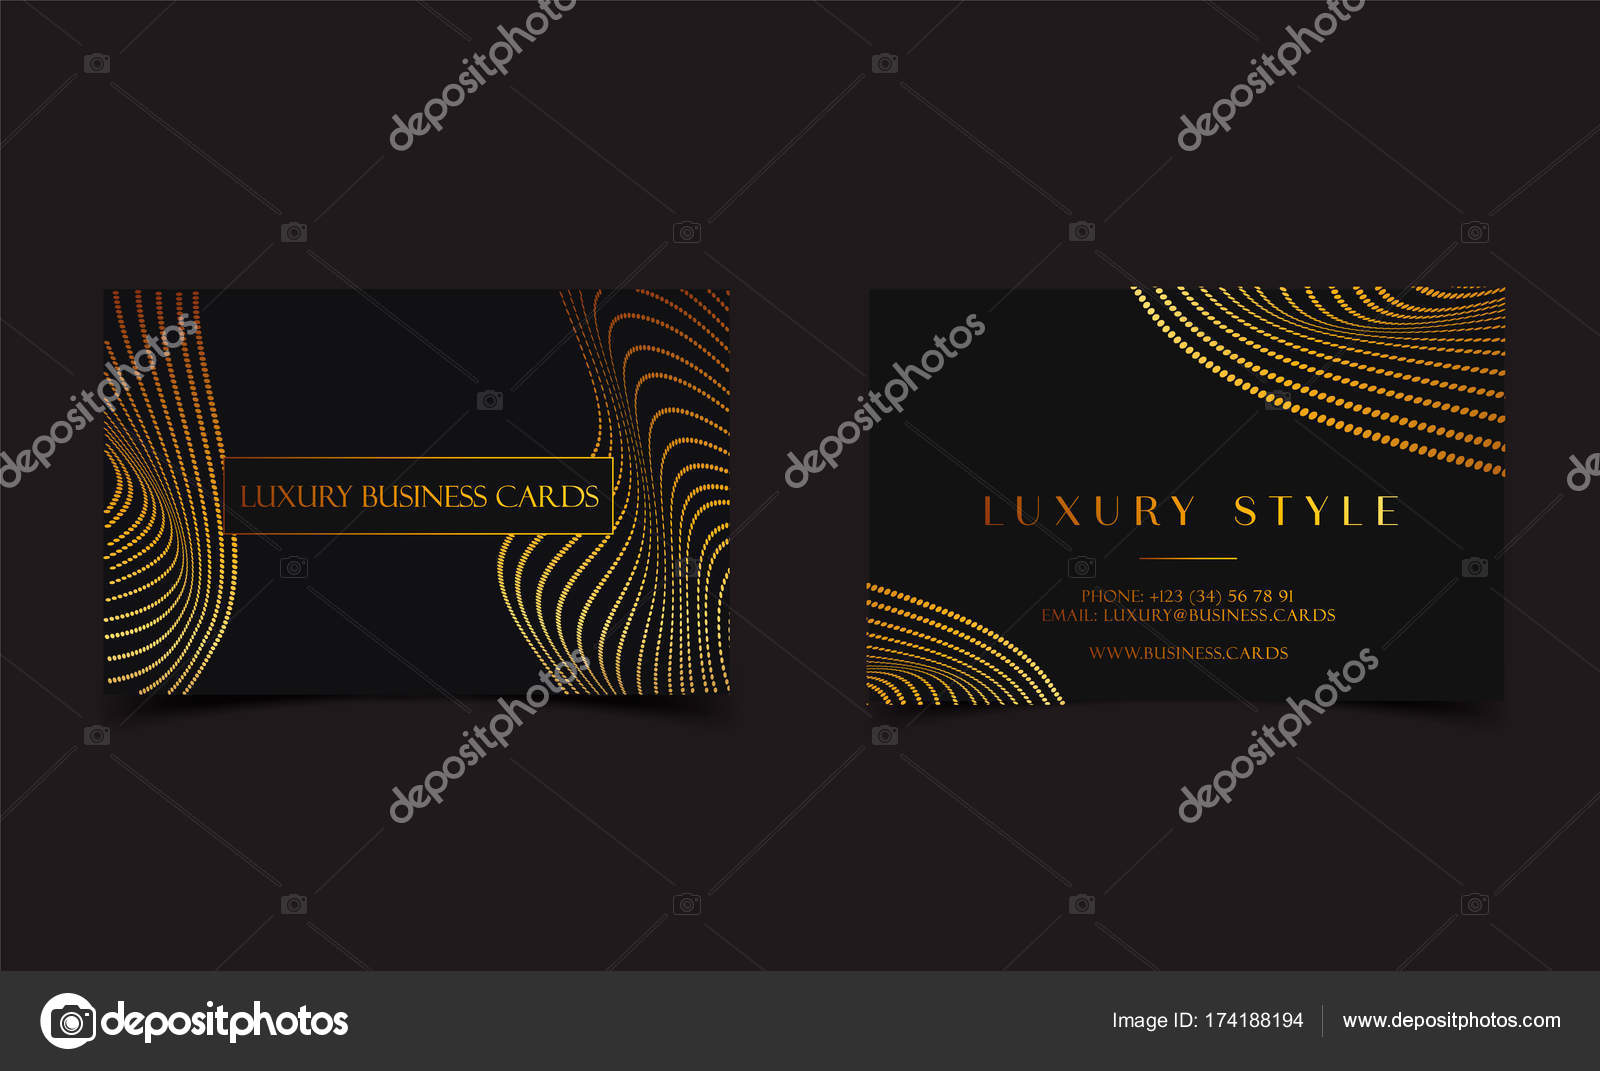 Black Gold Luxury Business Cards For Vip Event Elegant Greeting